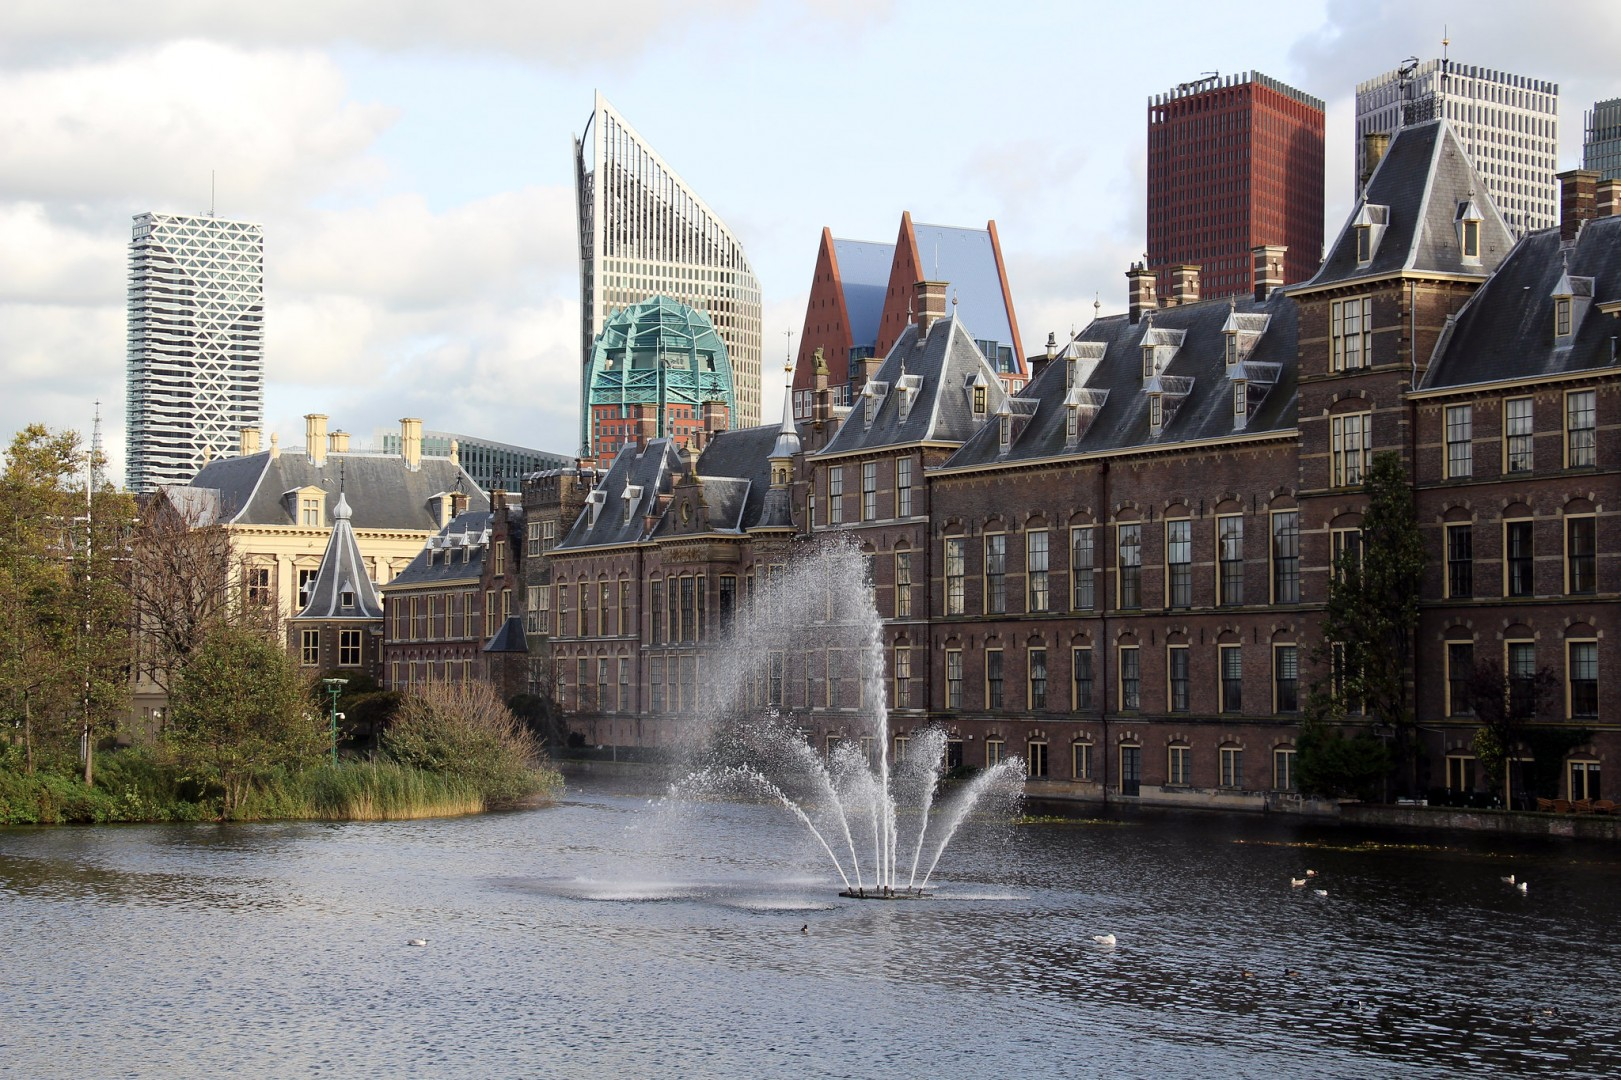 MPs at the Dutch Parliament were close this year to enacting a freeze on ground-mounted PV permits, amid worries over grid congestion (Credit: Flickr / Fred Romero)